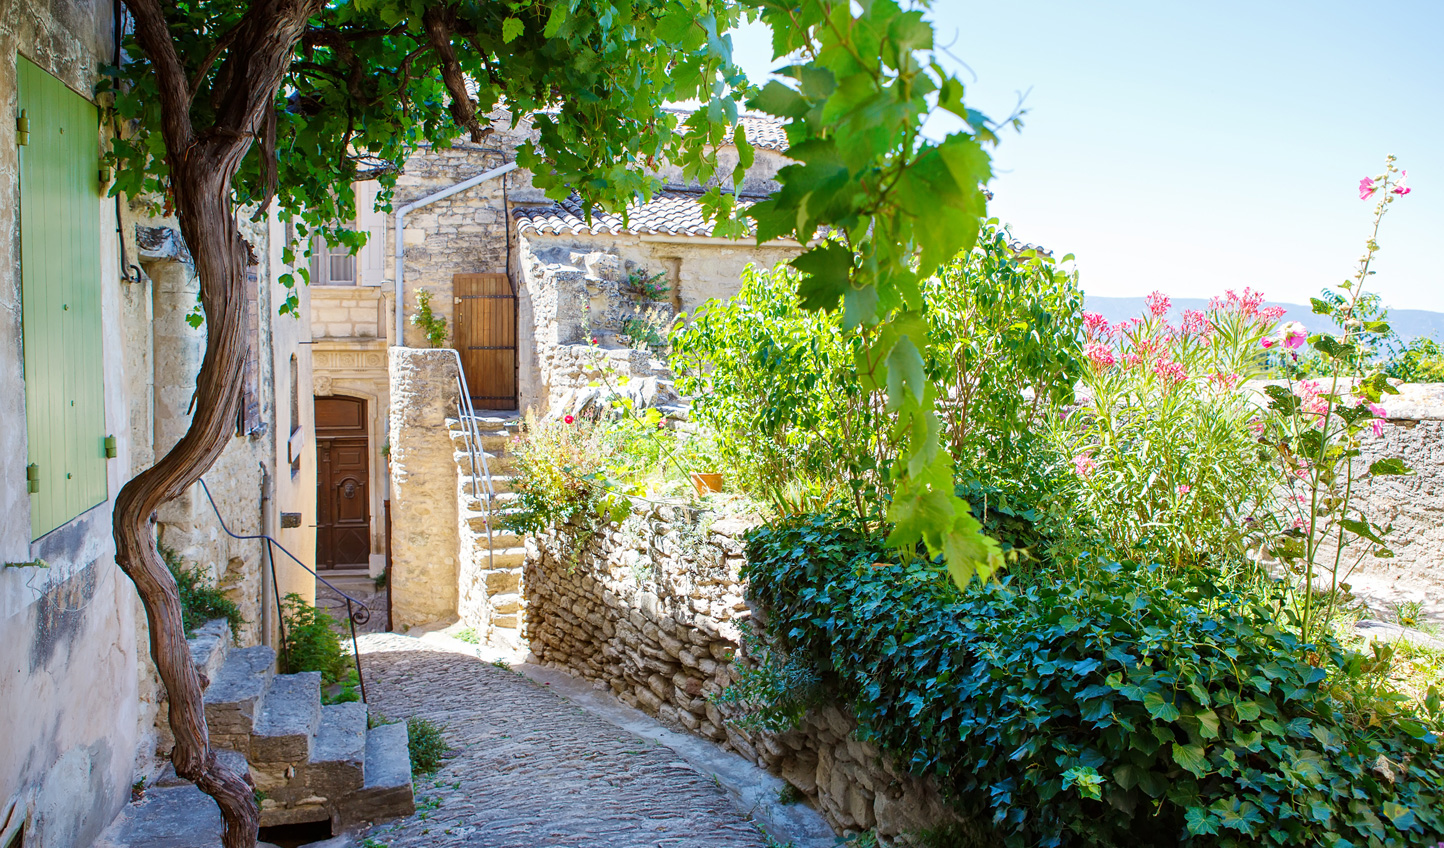 Wander the streets of Gordes